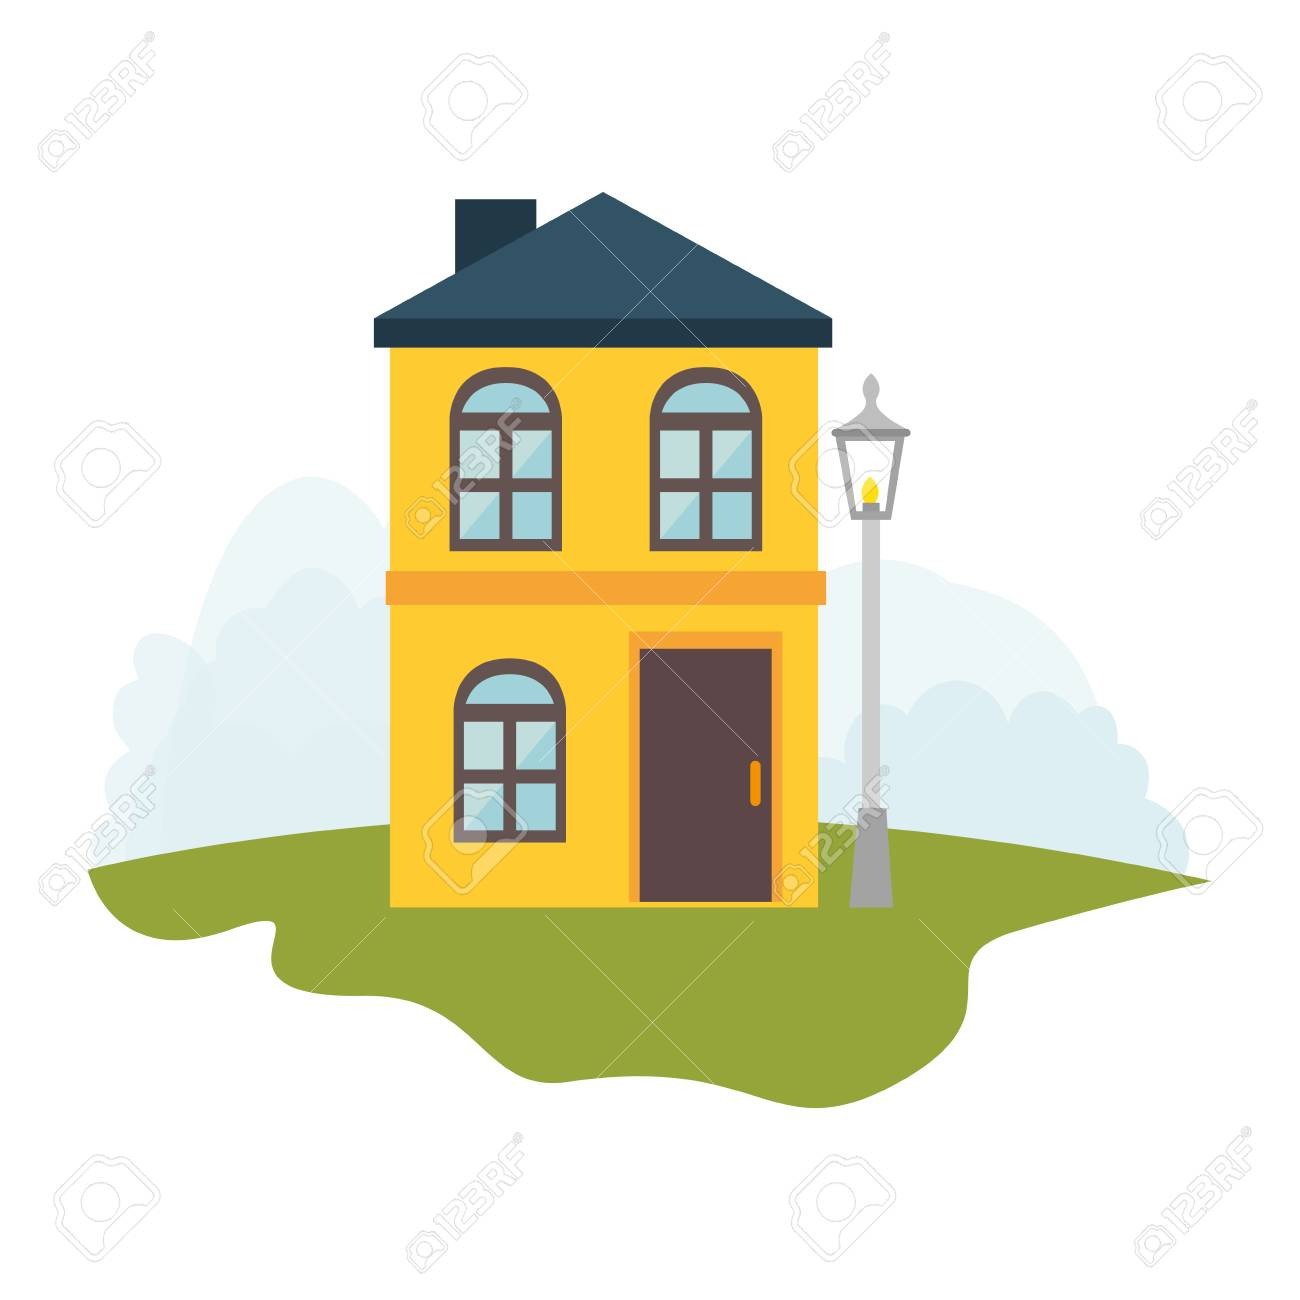 Exterior Cute House Icon Vector Illustration Design Royalty Free Cliparts Vectors And Stock Illustration Image 69437549